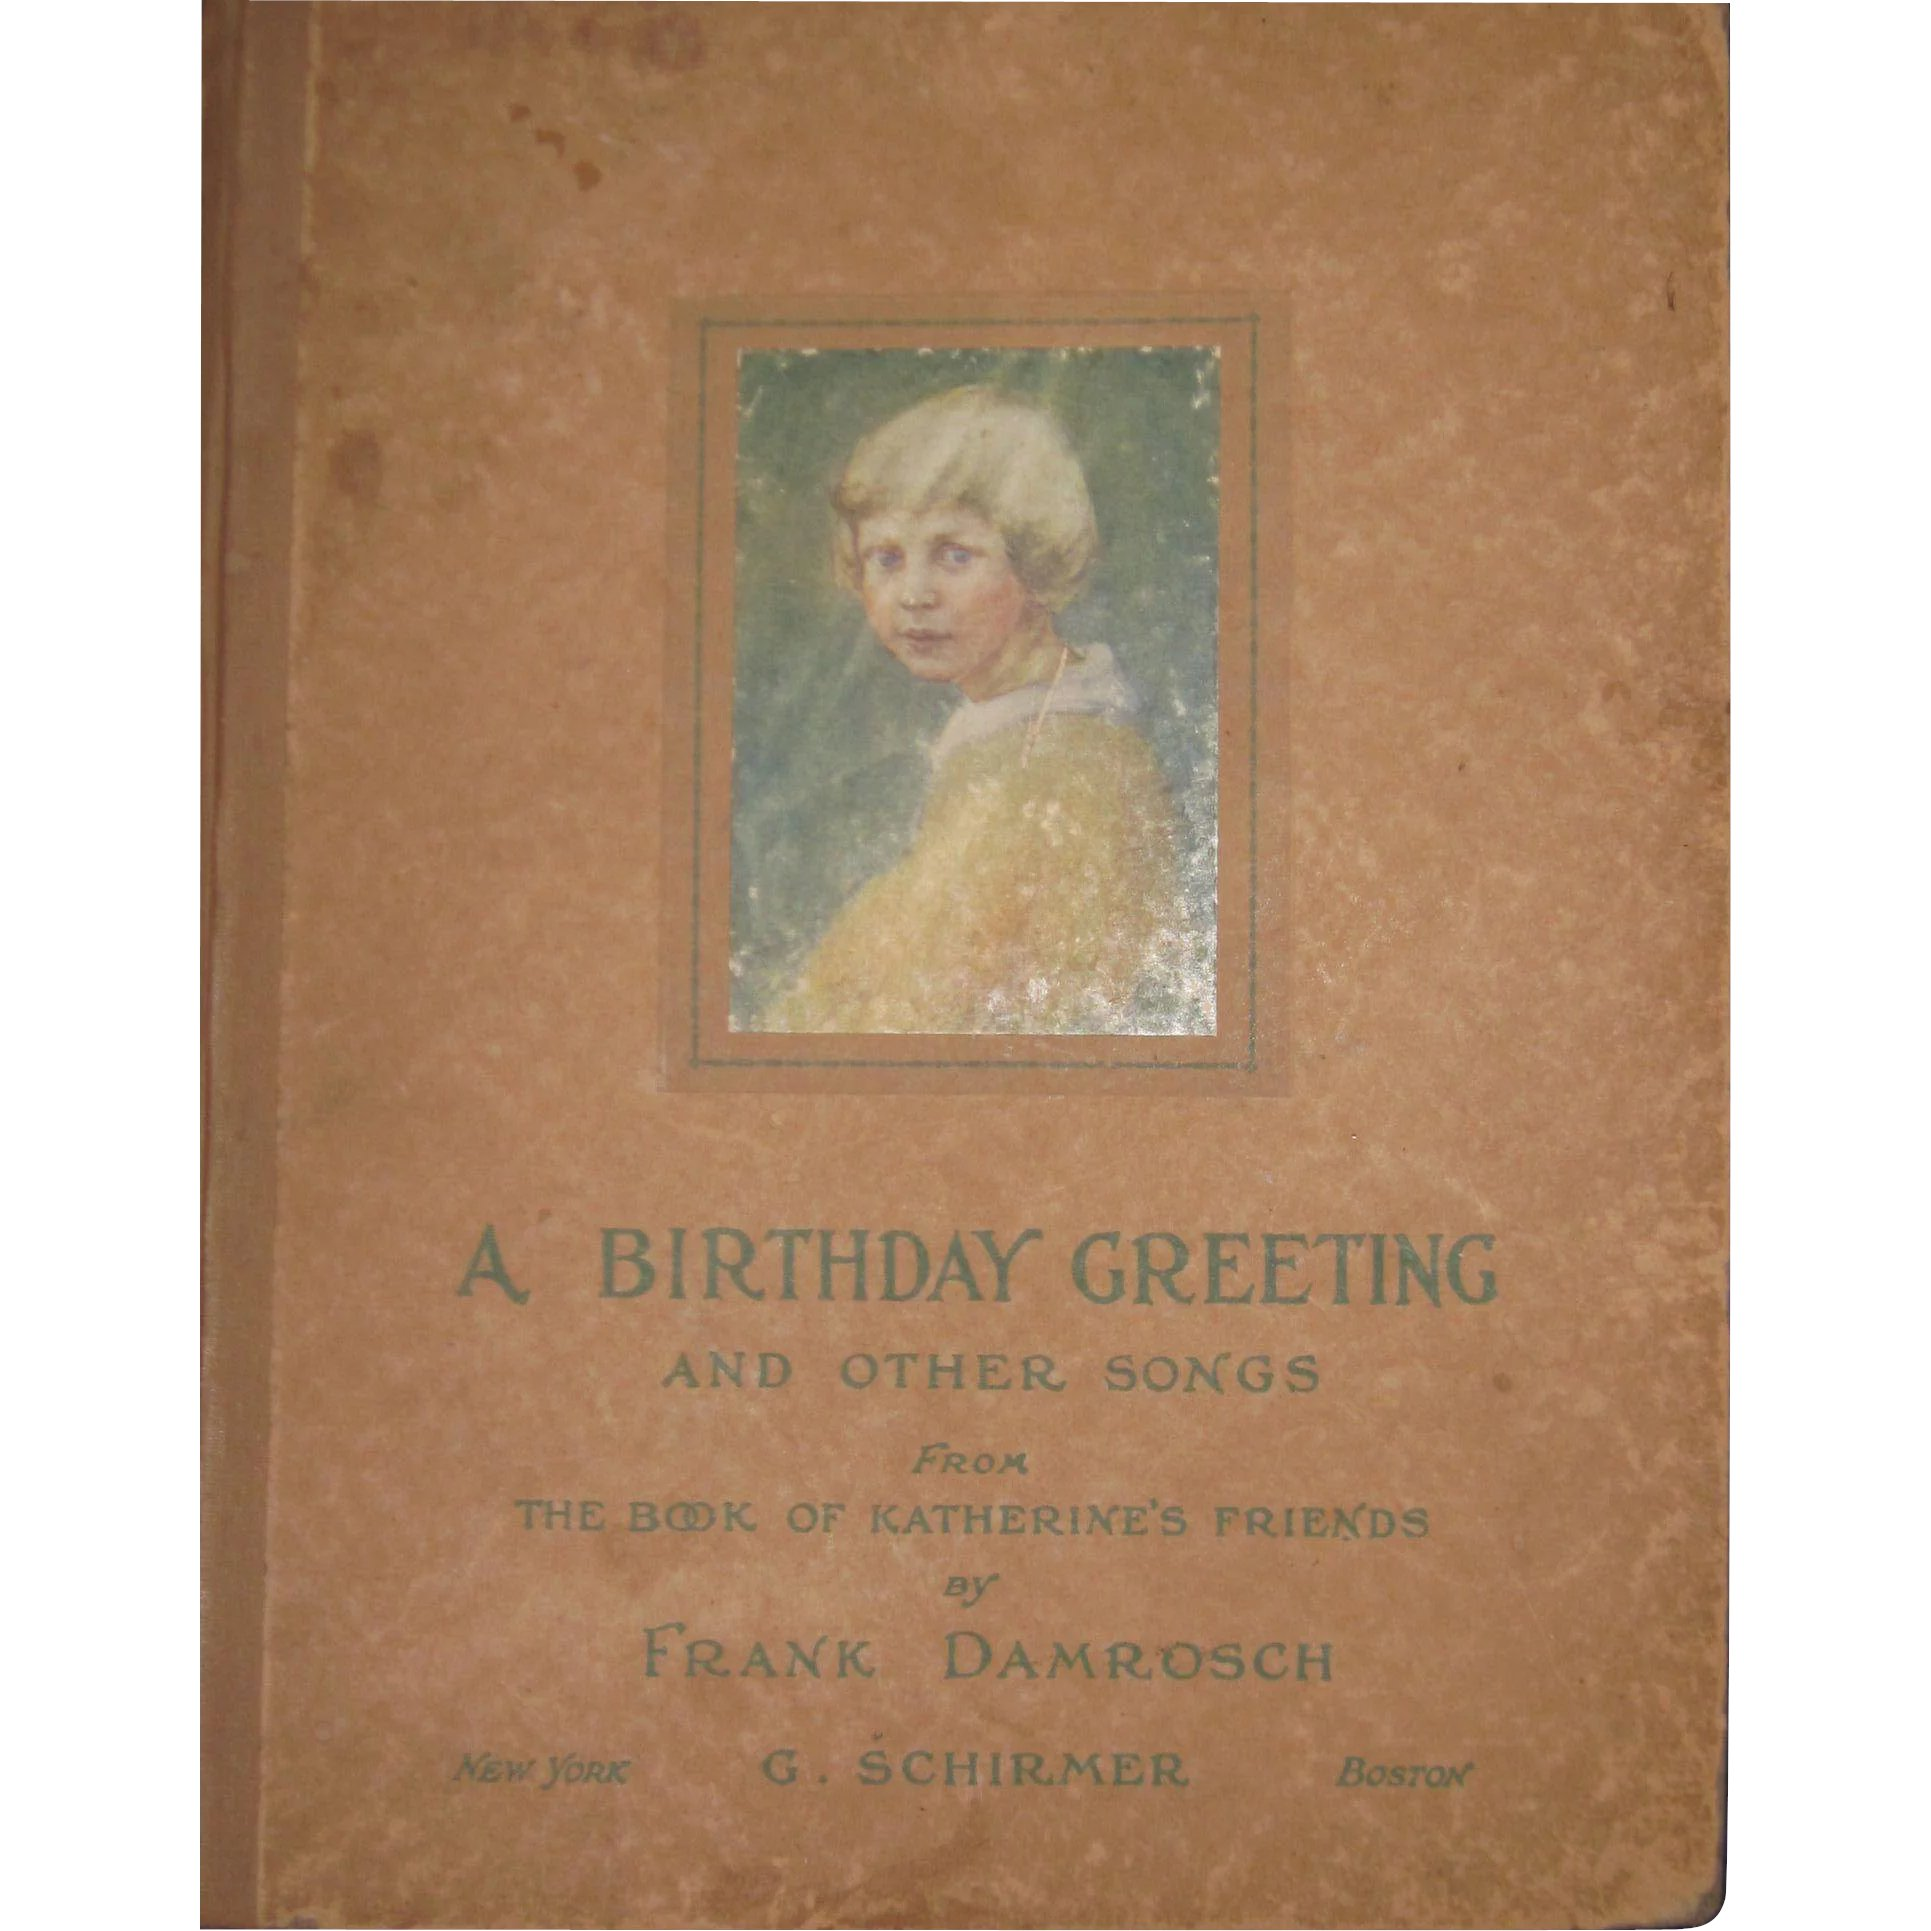 Rare 1900s Frank Damrosch A Birthday Greeting And Other Songs Free